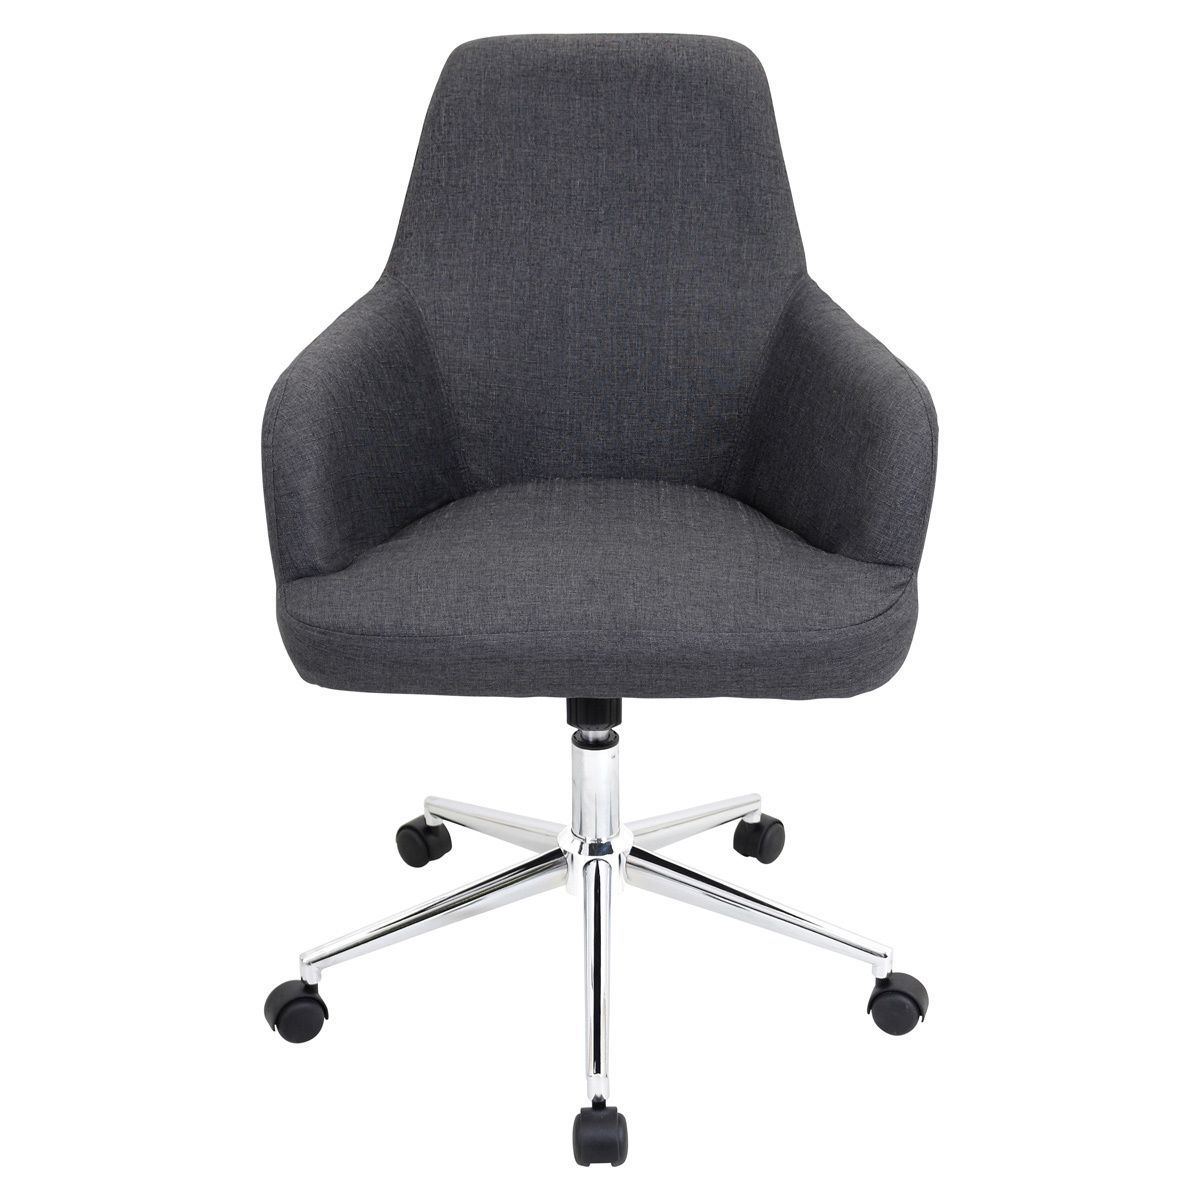 Lumisource Degree Fabric Office Chair Grey